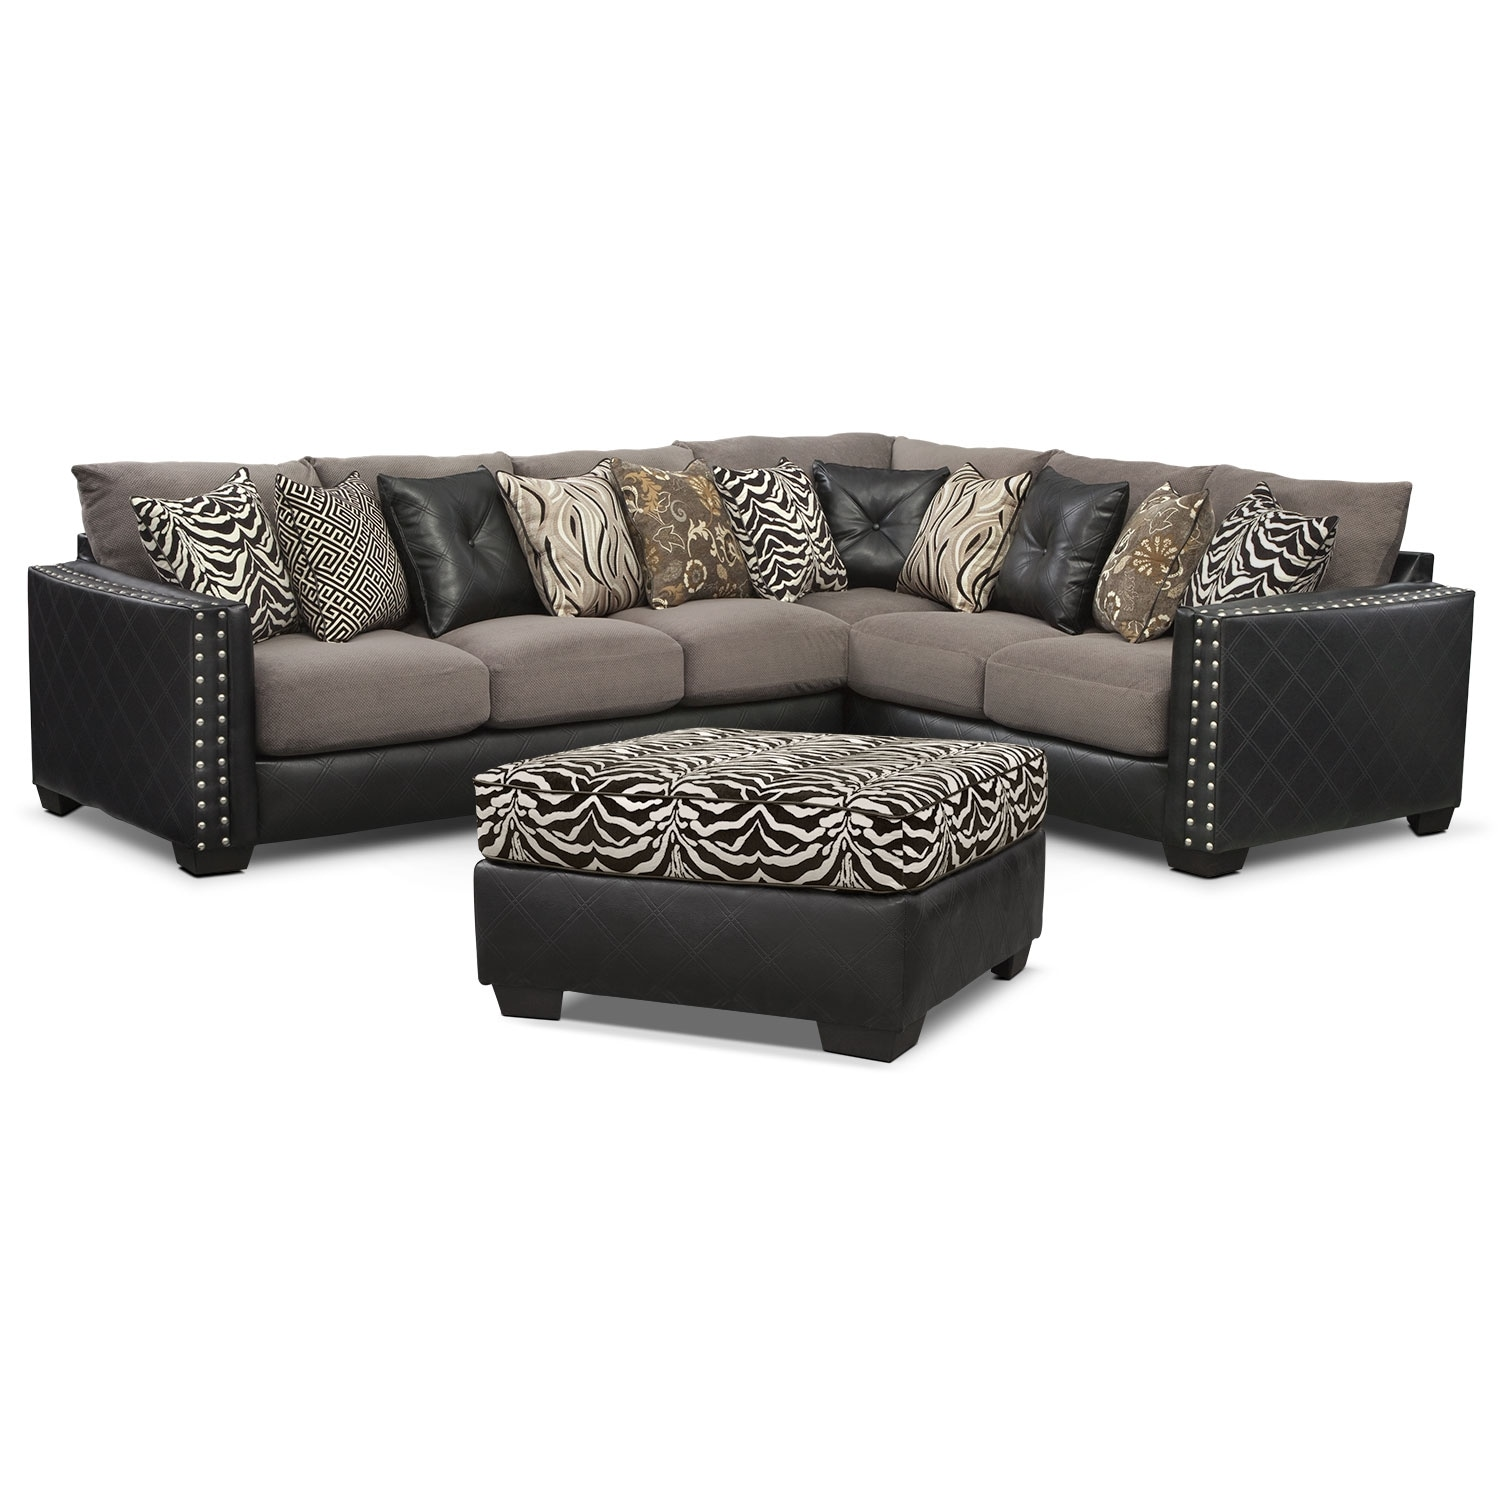 [Lola 2 Pc. Innerspring Sleeper Sectional w/ Cocktail Ottoman]